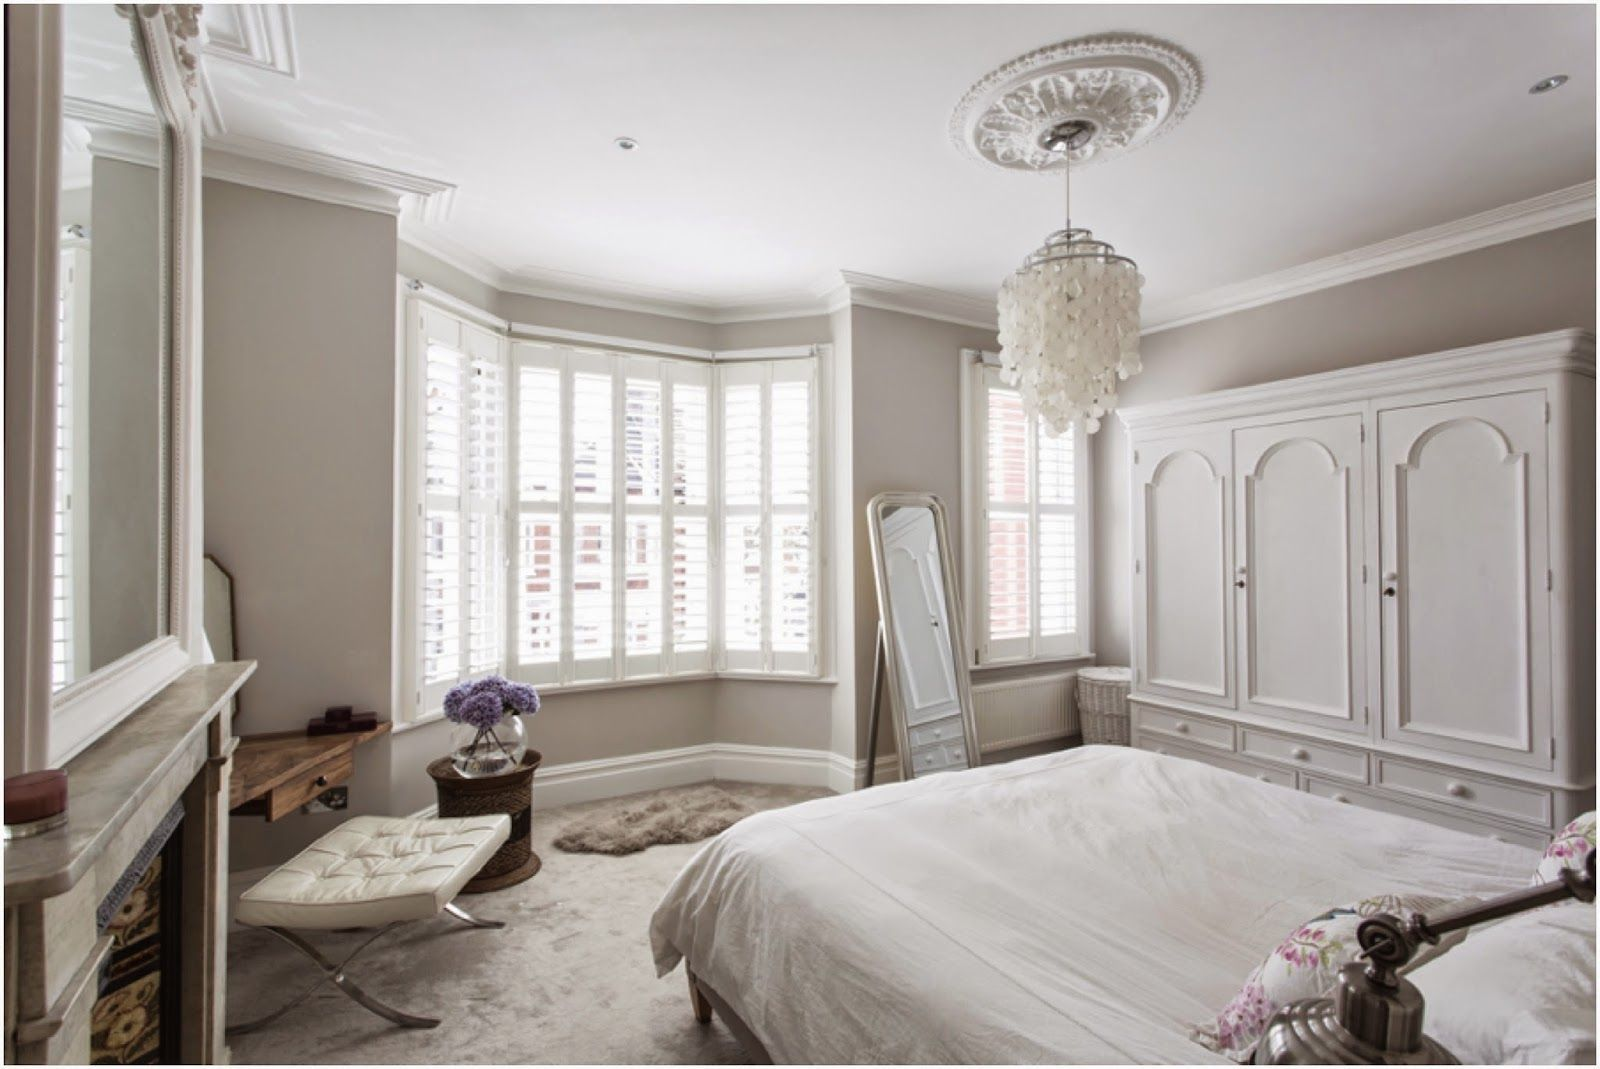 Bedroom Complete Farrow Ball Cornforth White Walls